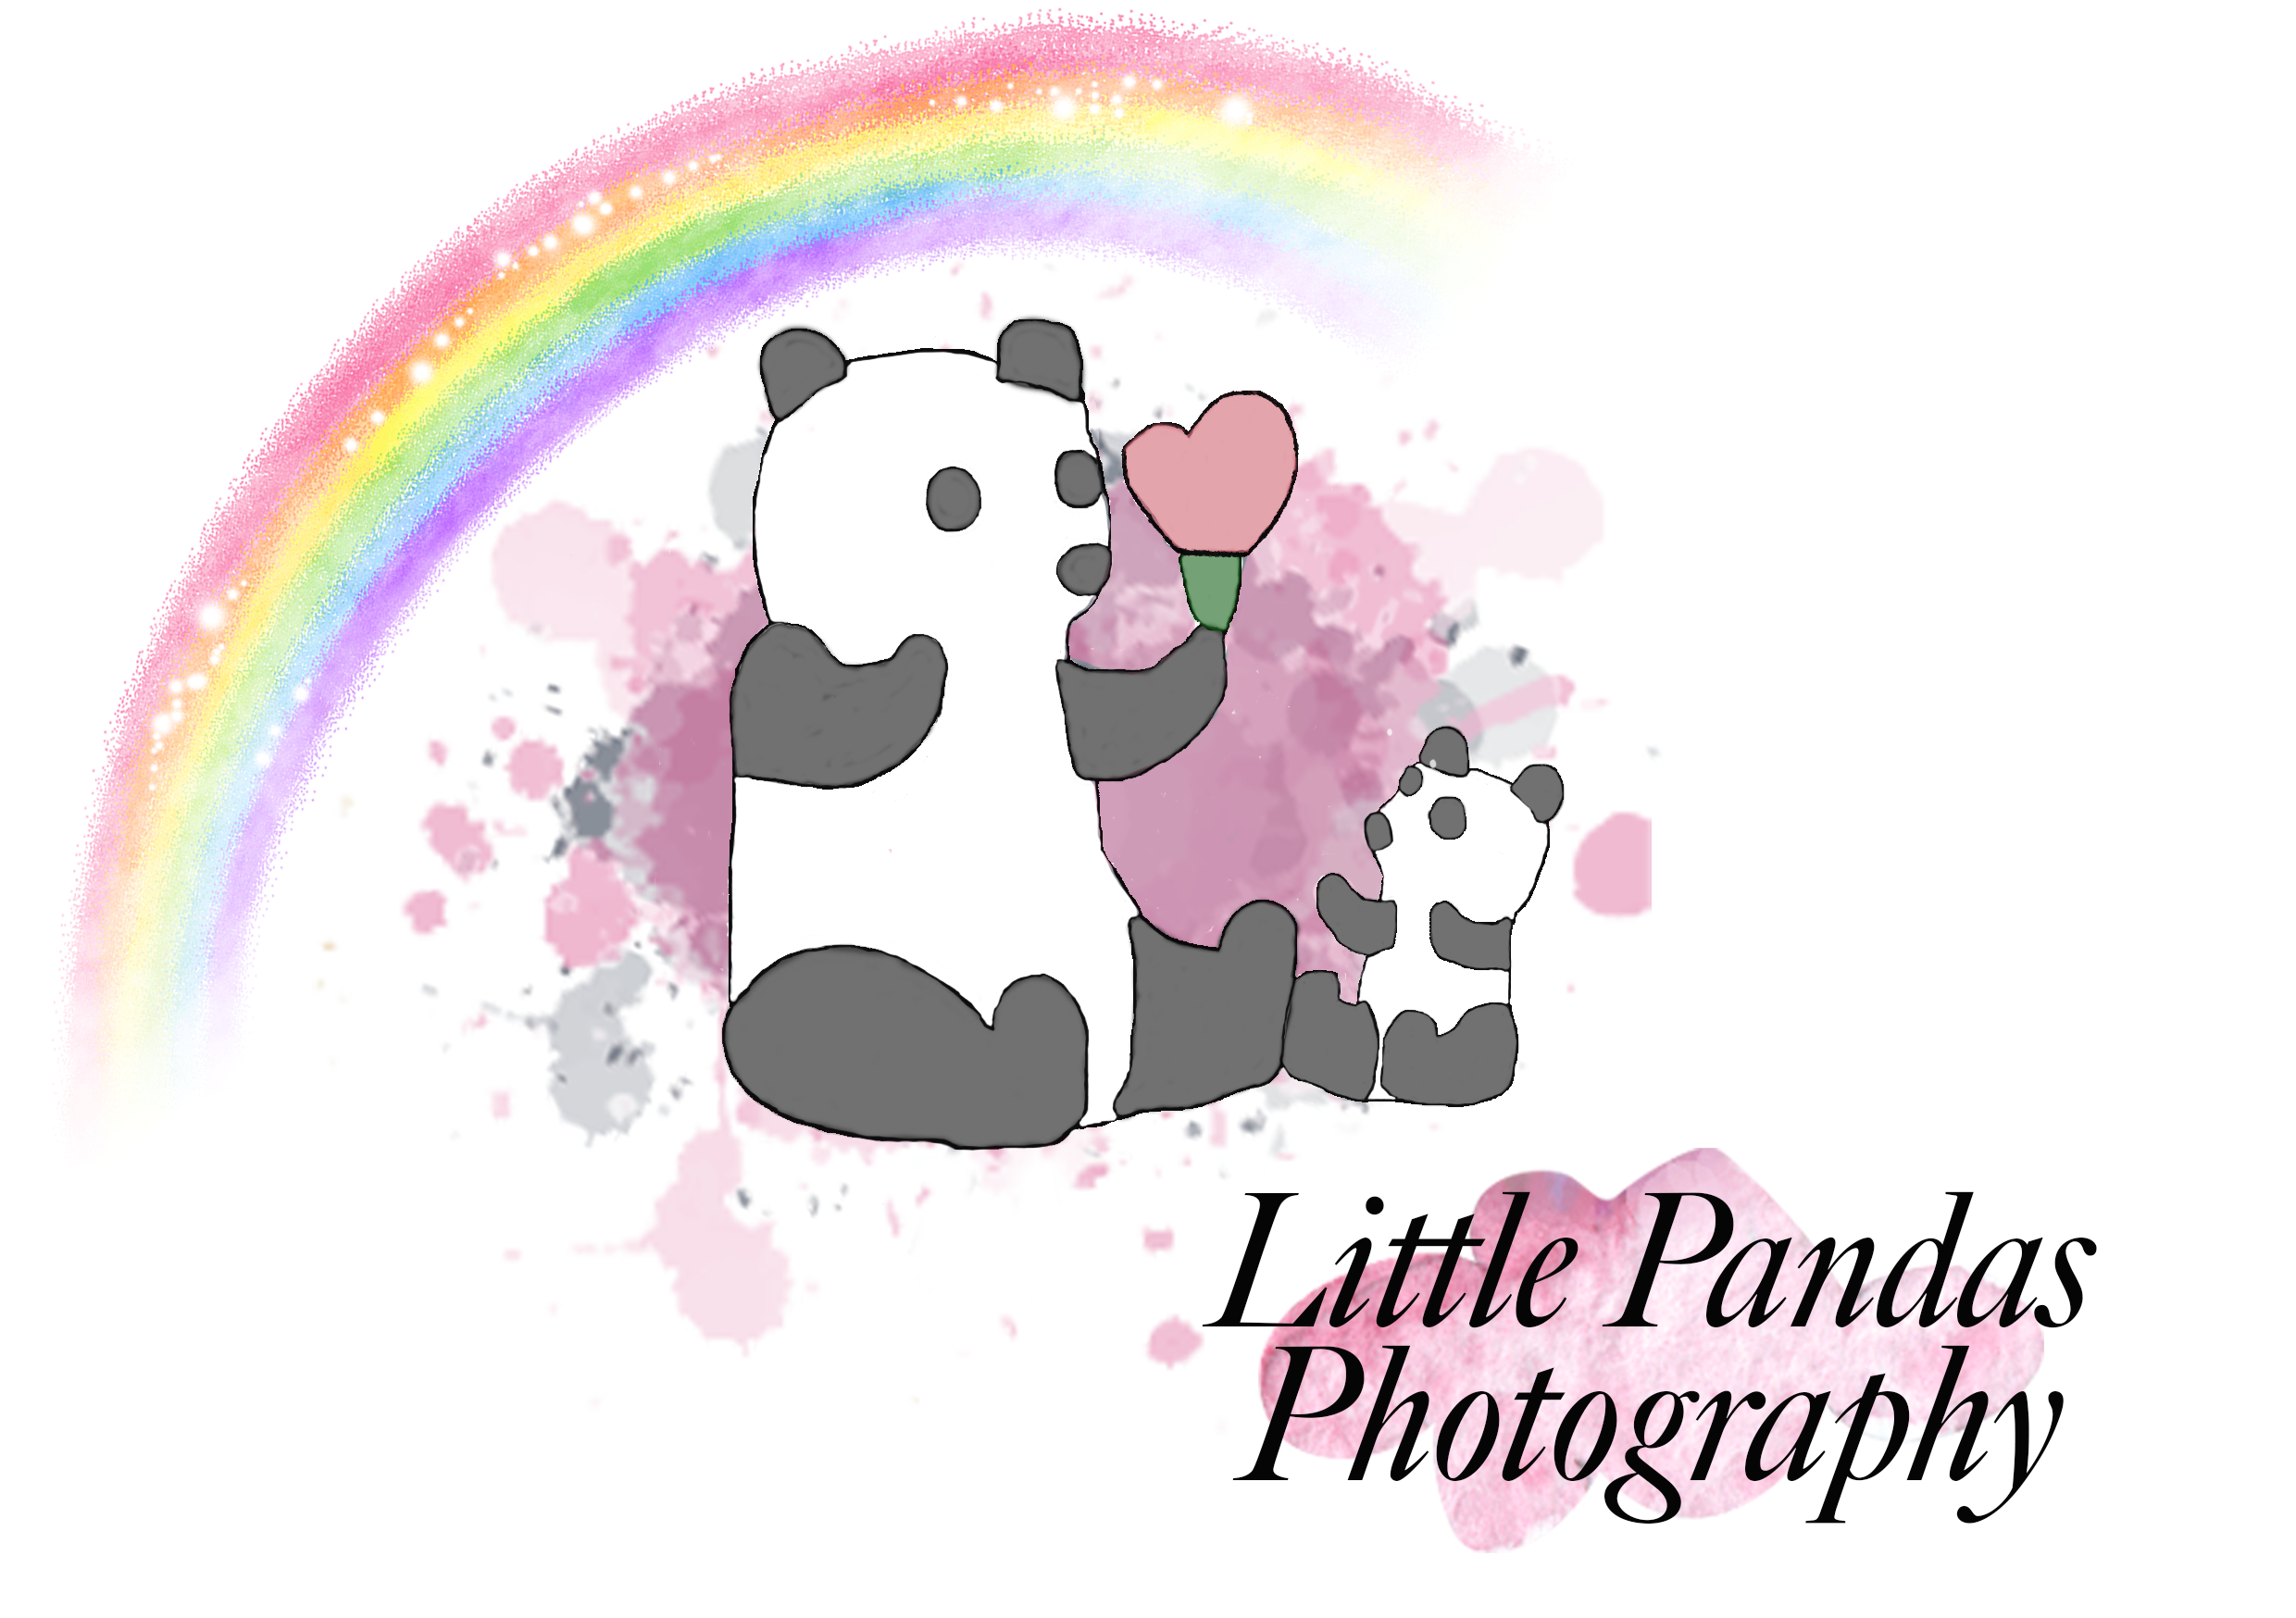 Little Pandas Photography